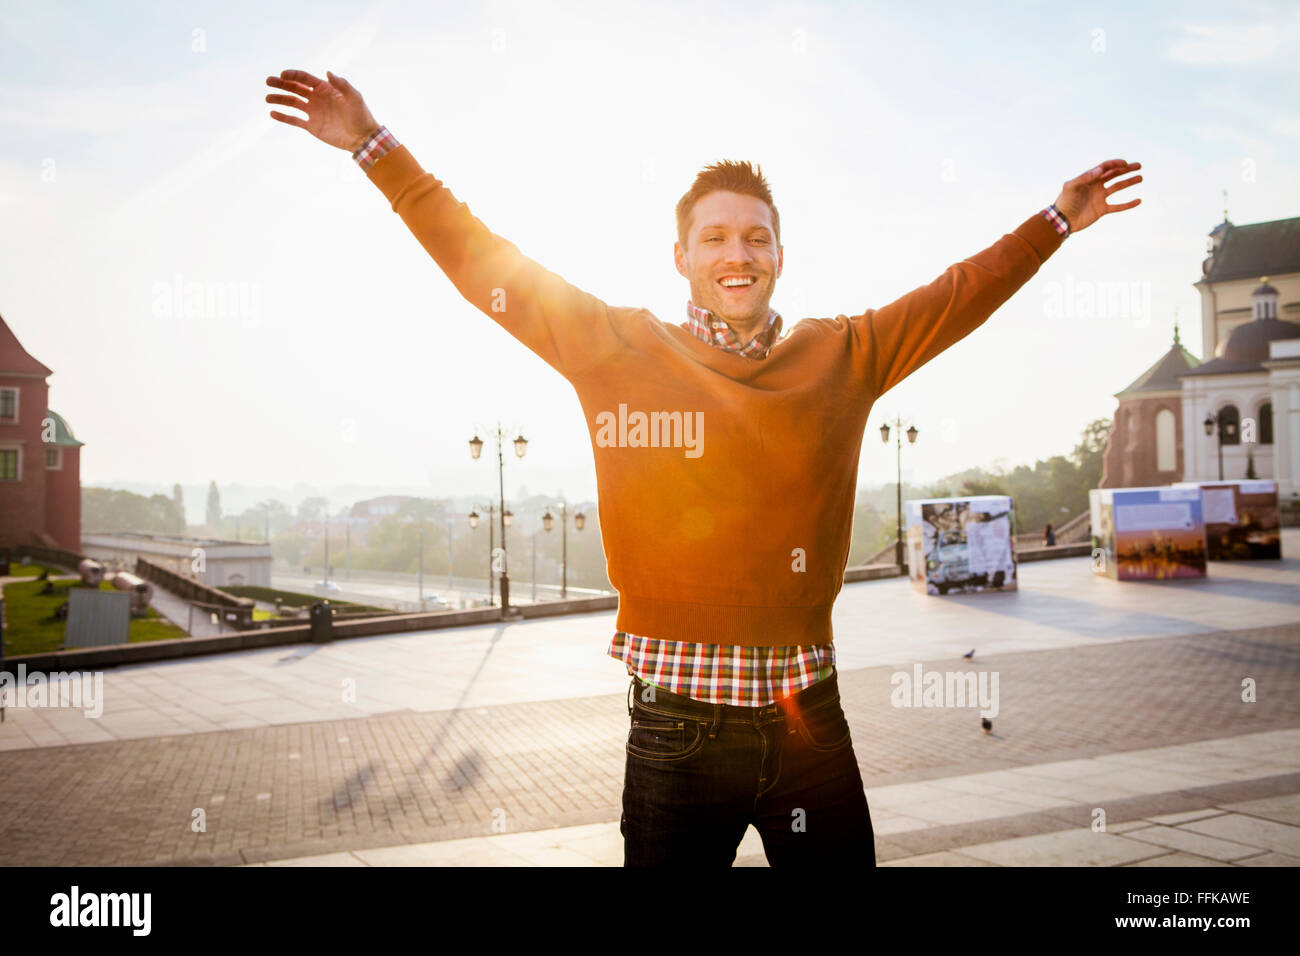 Mid adult man on a city break standing with arms raised - Stock Image